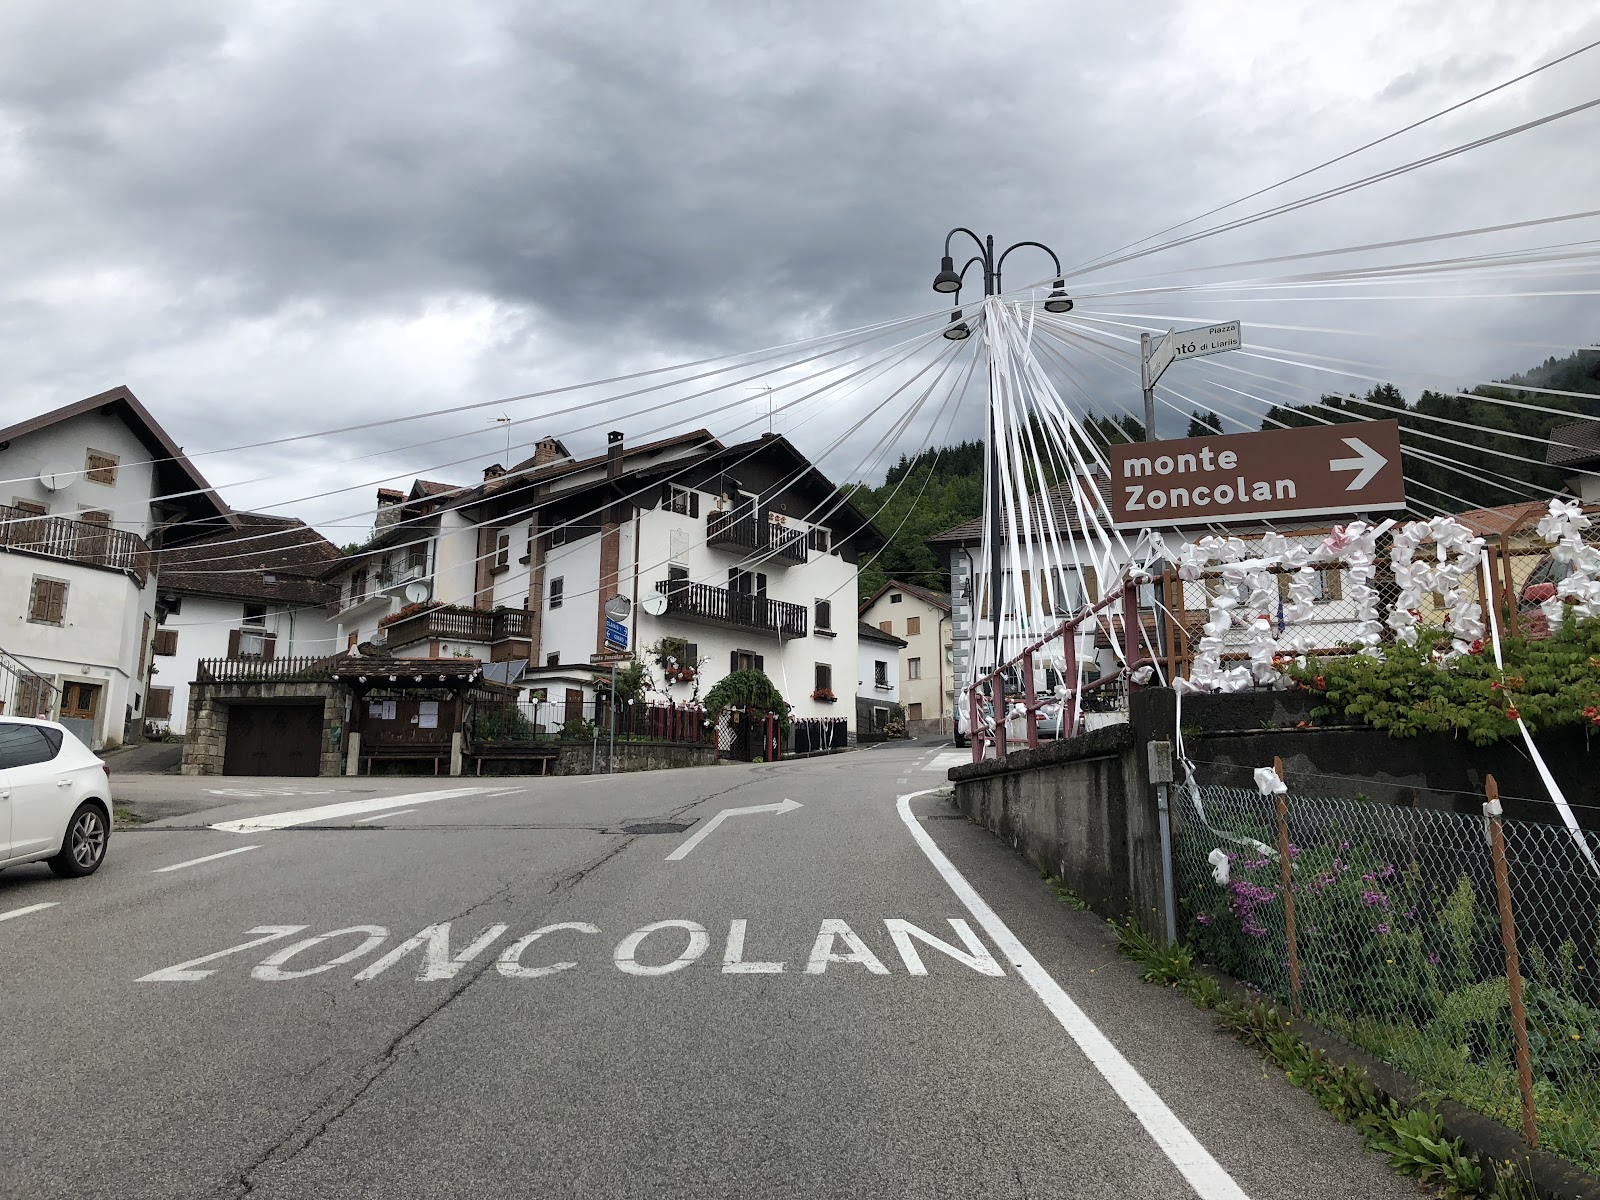 bike climb of Monte Zoncolan from Ovaro - start of climb - town, buildings, road and sign